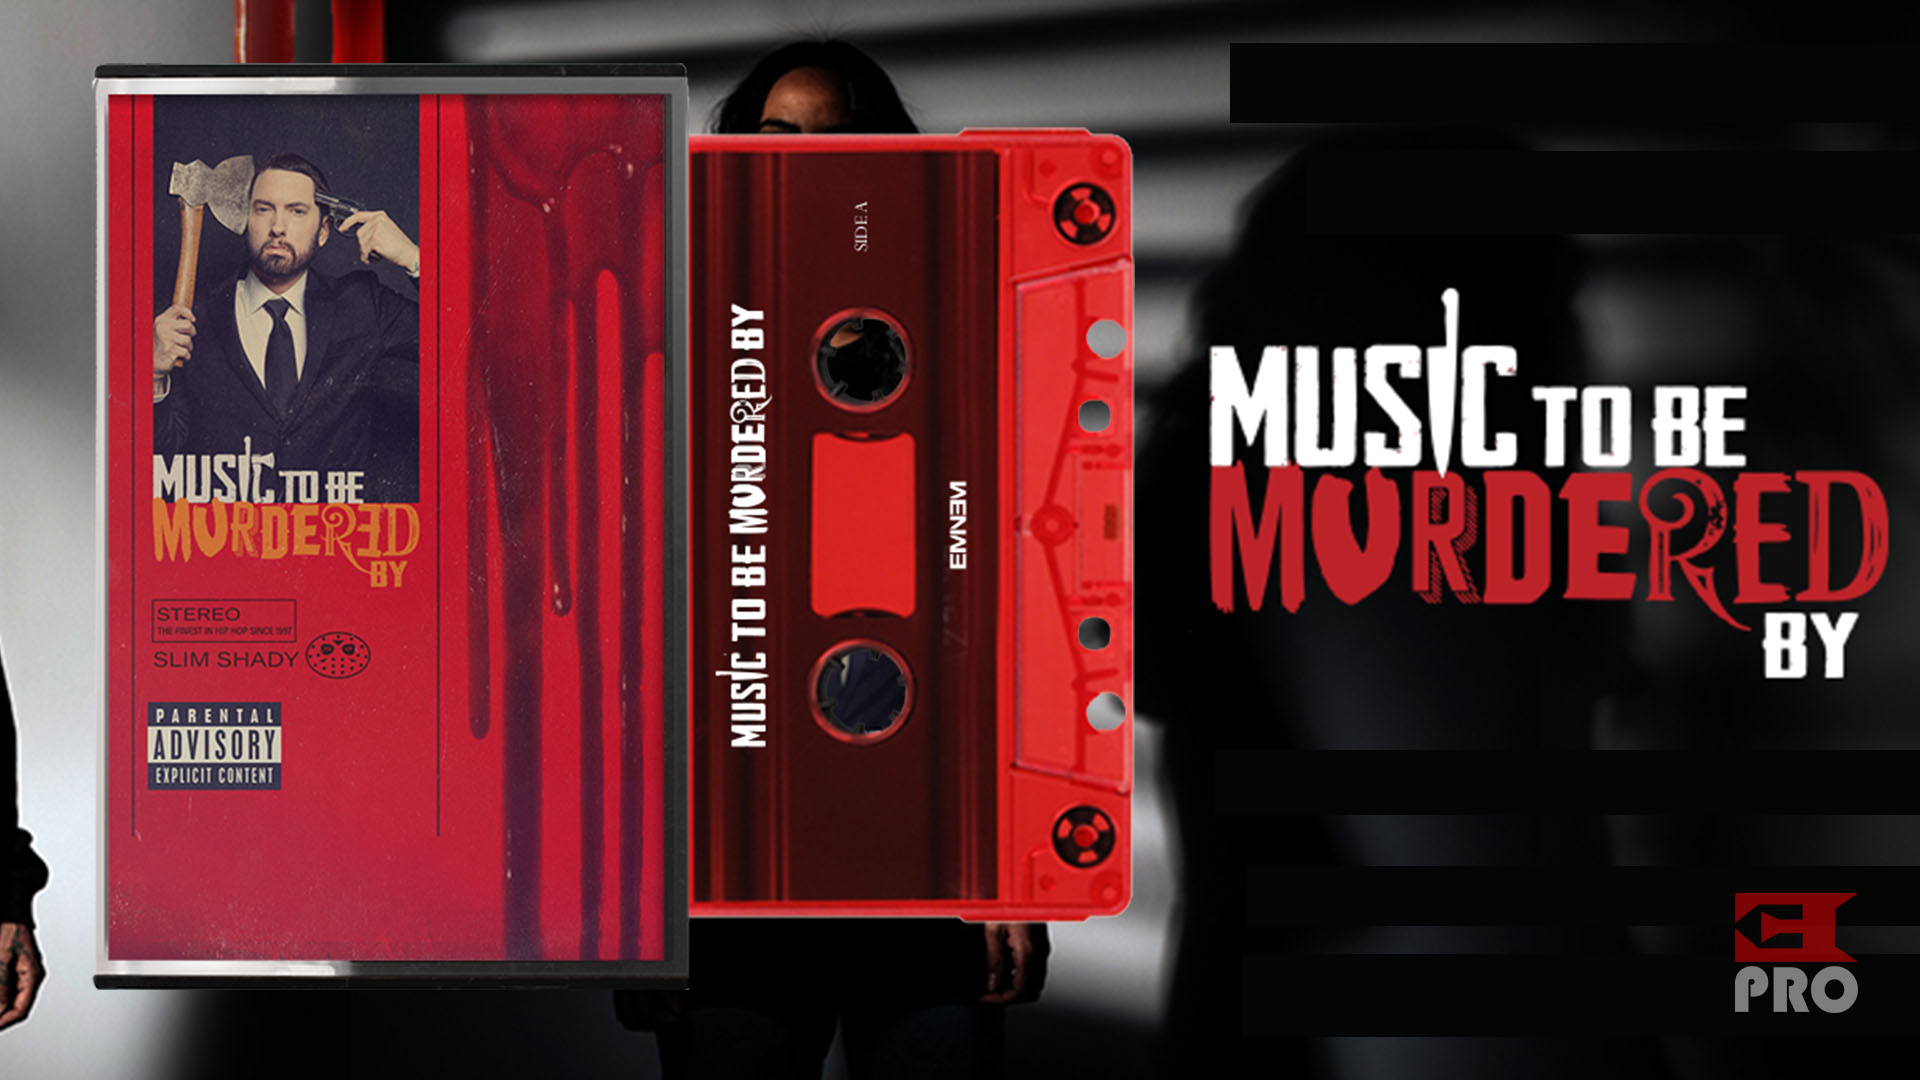 Все 20 треков альбома «Music To Be Murdered By» вошли в чарт Apple Music Top 100